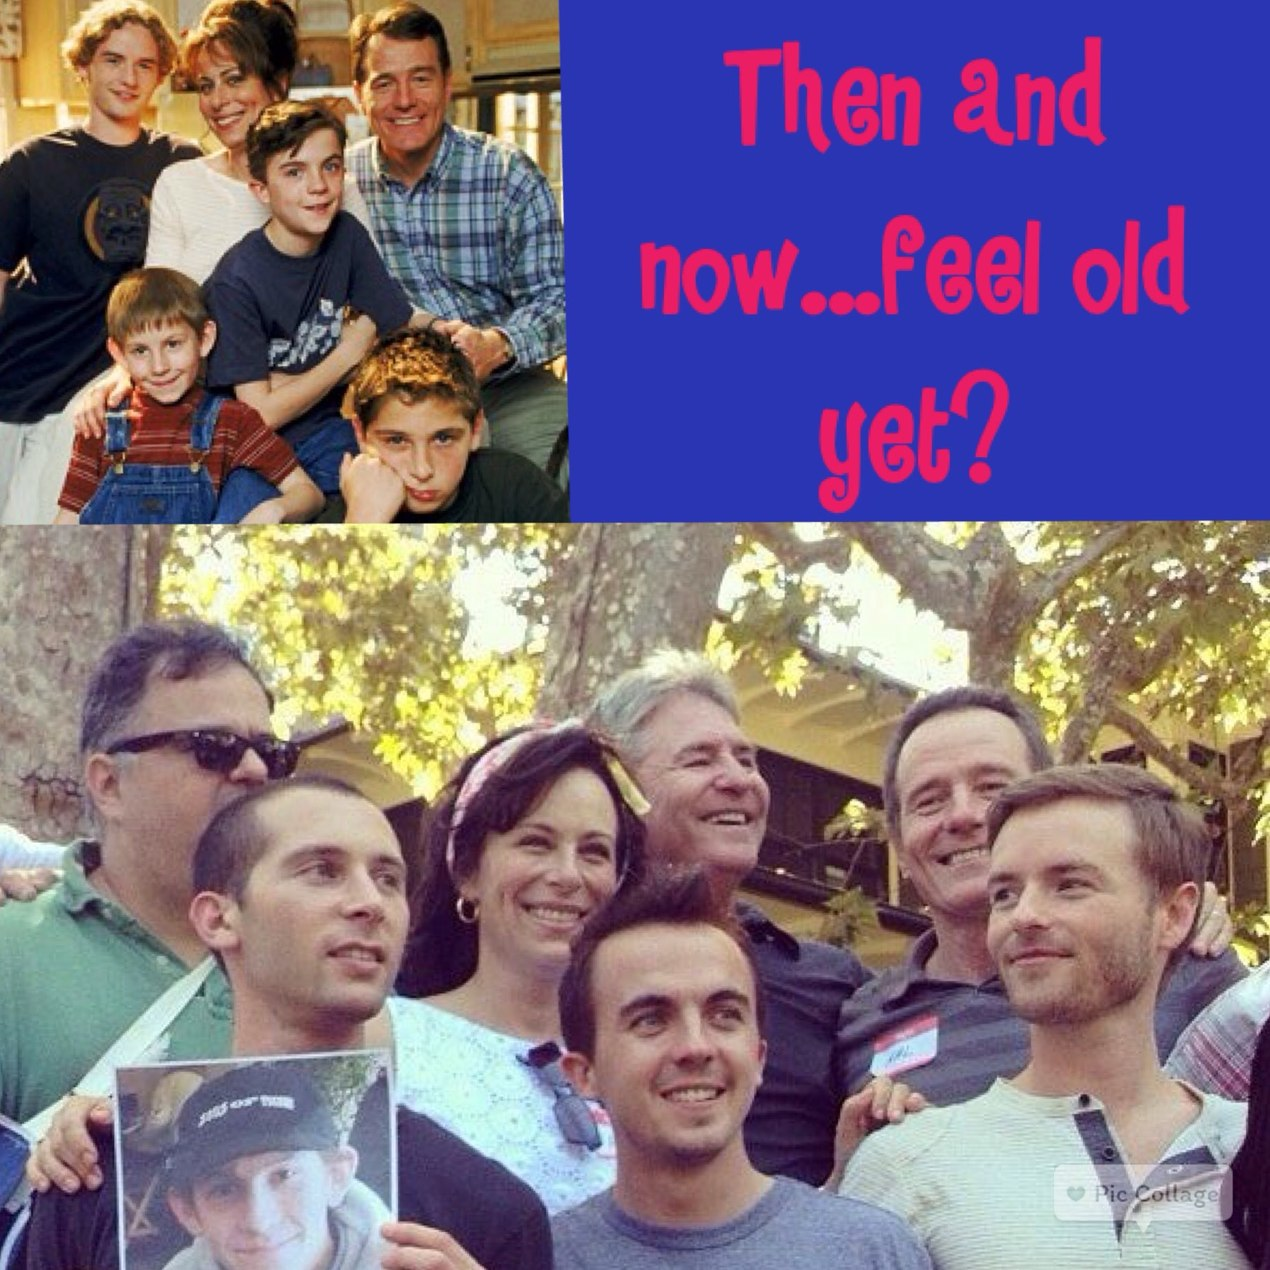 feel old yet? - meme